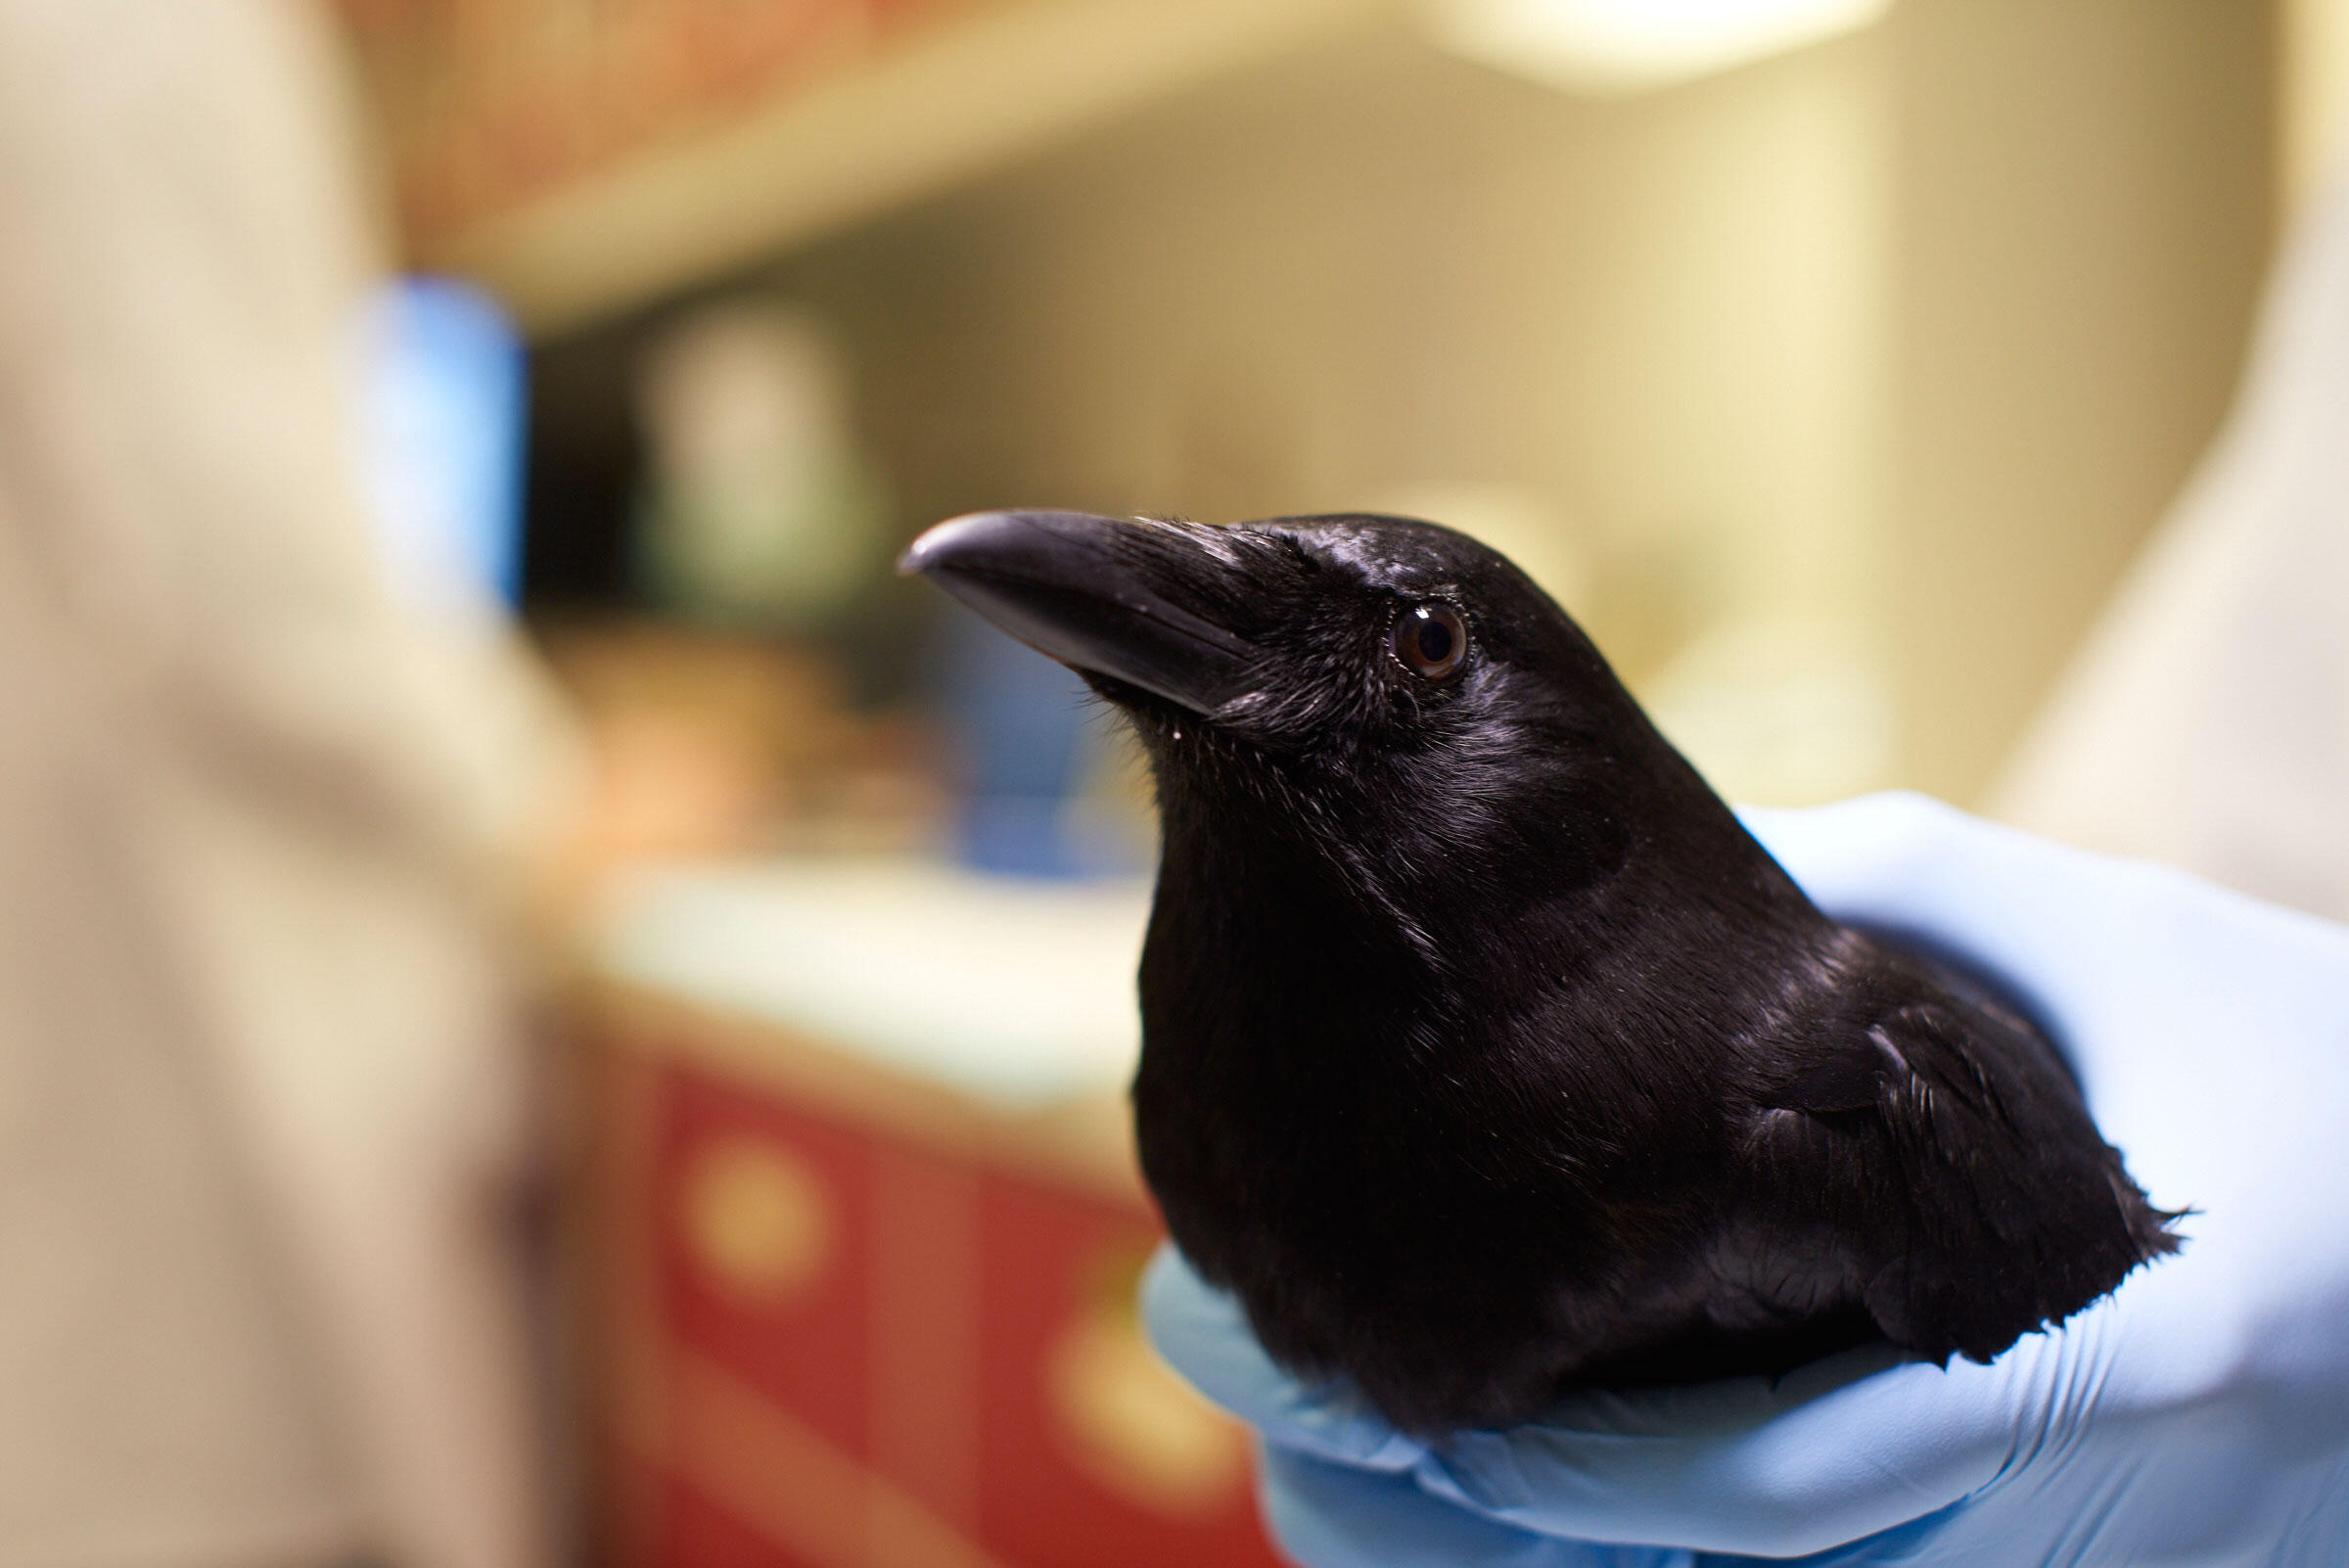 A researcher secures the crow as it revives Andy Reynolds